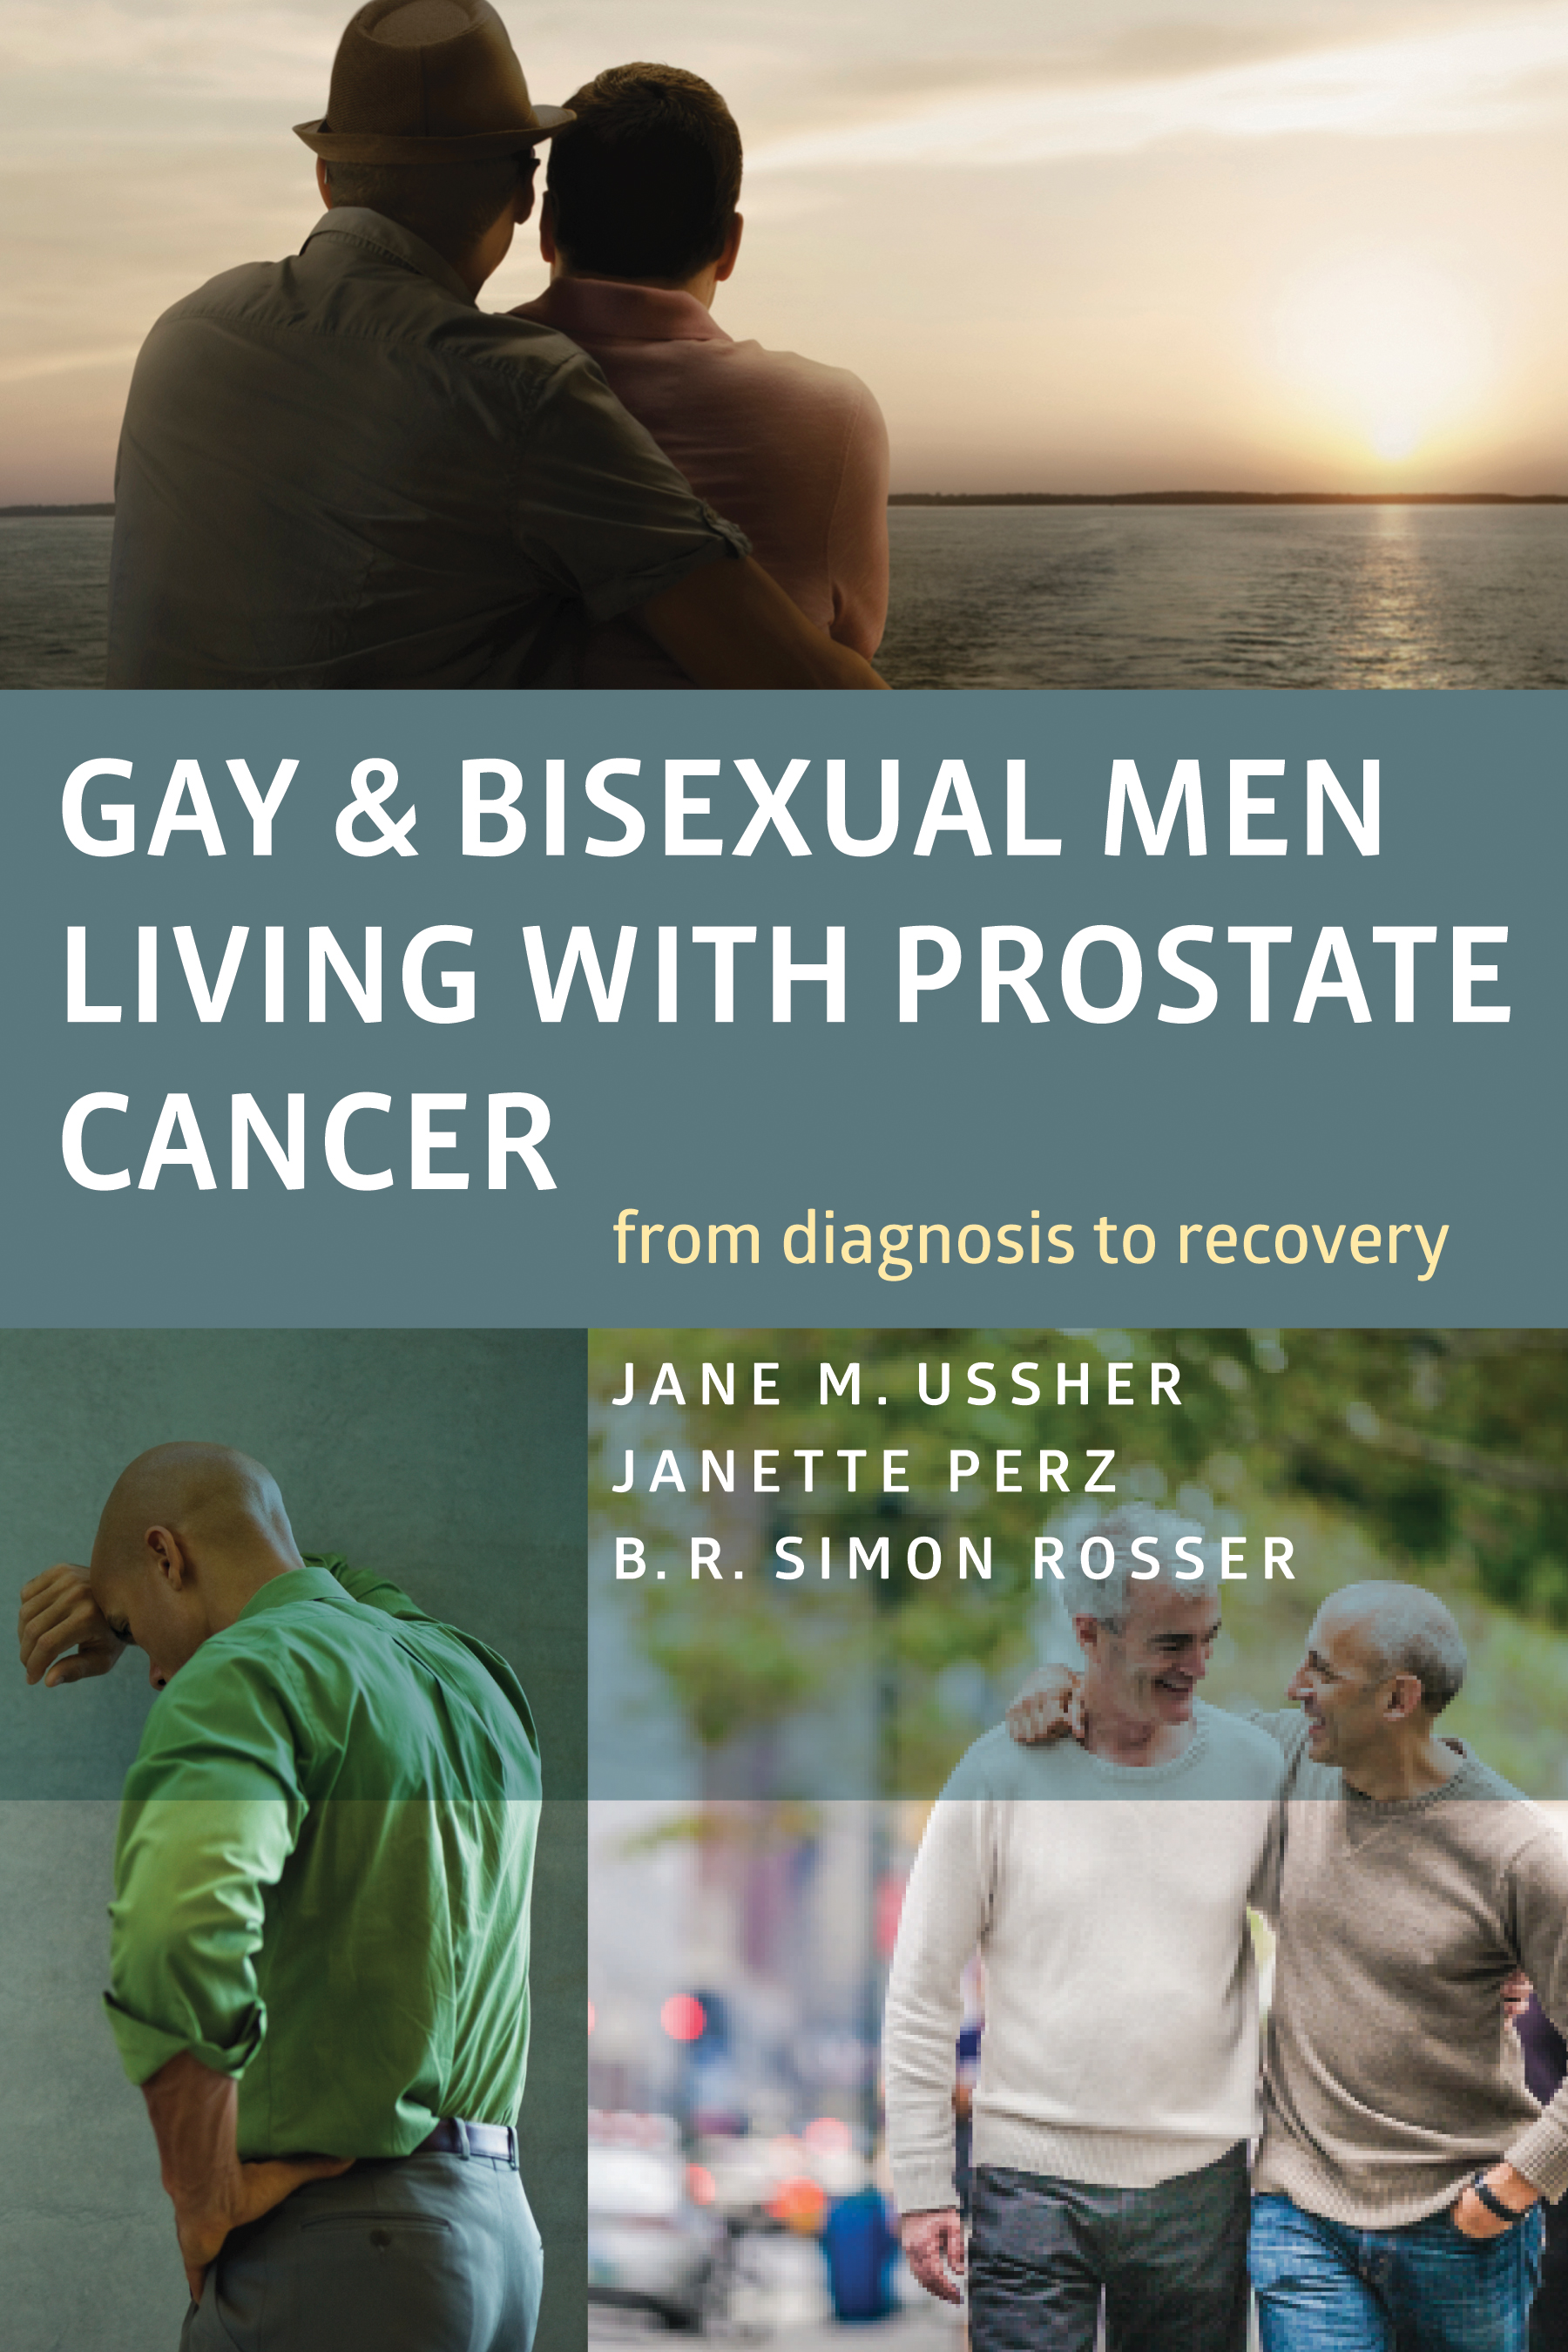 Gay and Bisexual Men Living with Prostate Cancer: From Diagnosis to Recovery - Jane M. Ussher, Janette Perz, and B. R. Simon Rosser2018